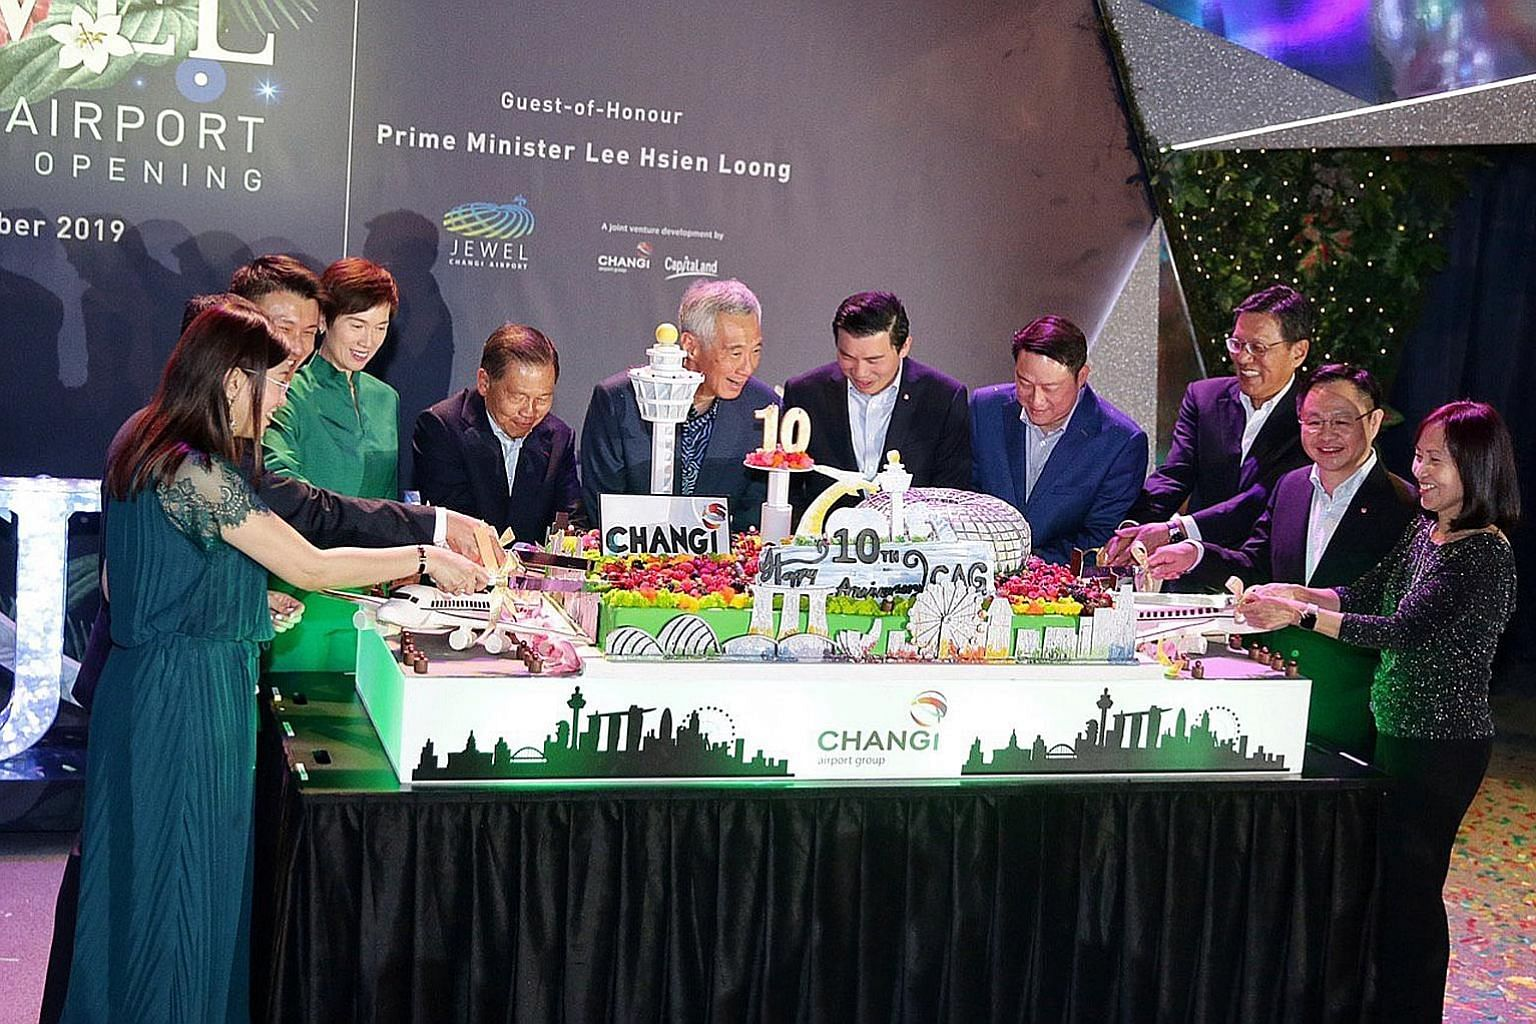 Prime Minister Lee Hsien Loong cutting a cake yesterday to celebrate Changi Airport Group's 10th anniversary with (from left) CAG's executive vice-president of commercial Lim Peck Hoon; CAG's executive vice-president of airport management Tan Lye Tec